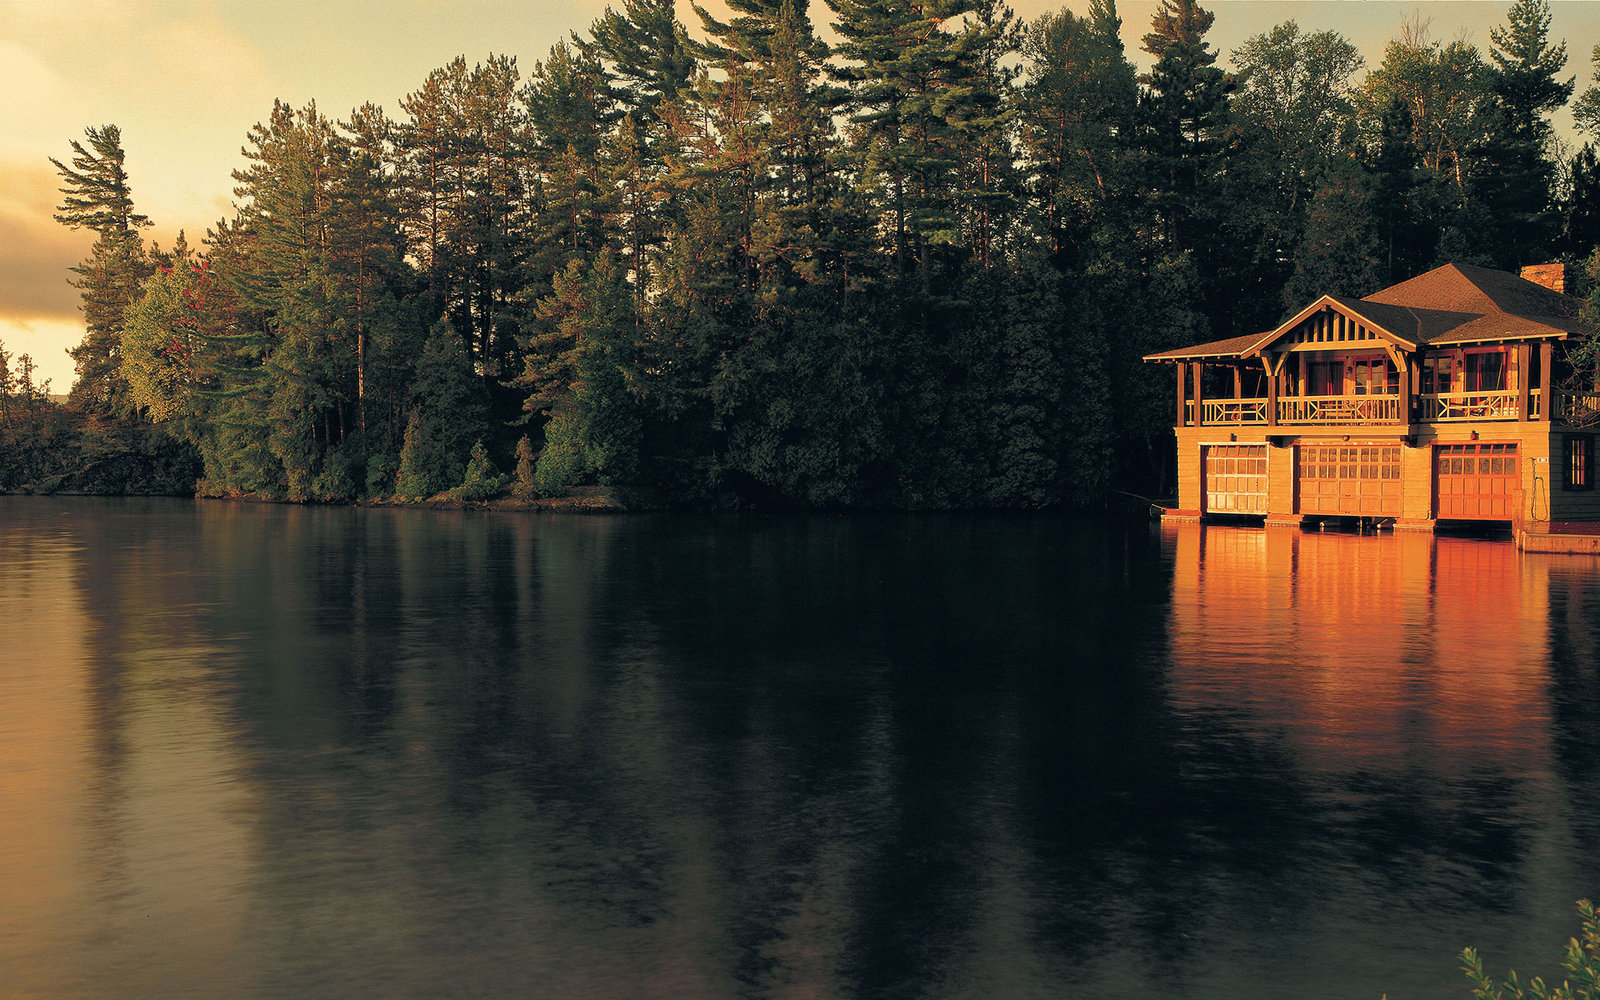 The Point Resort, Saranac Lake, NY